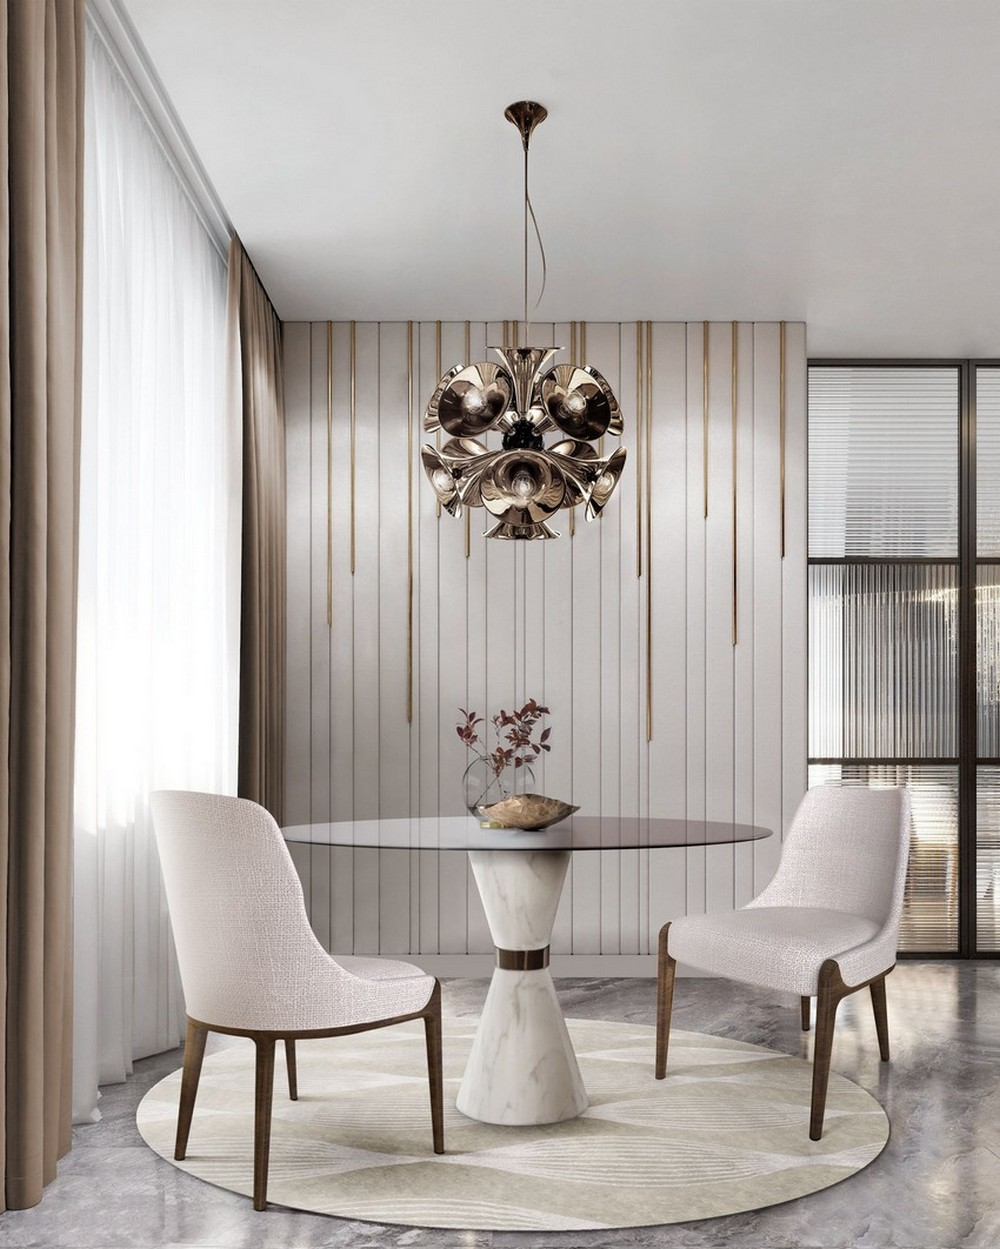 dining tables 2020 In Retrospective: The Best Dining Tables and Chairs 1